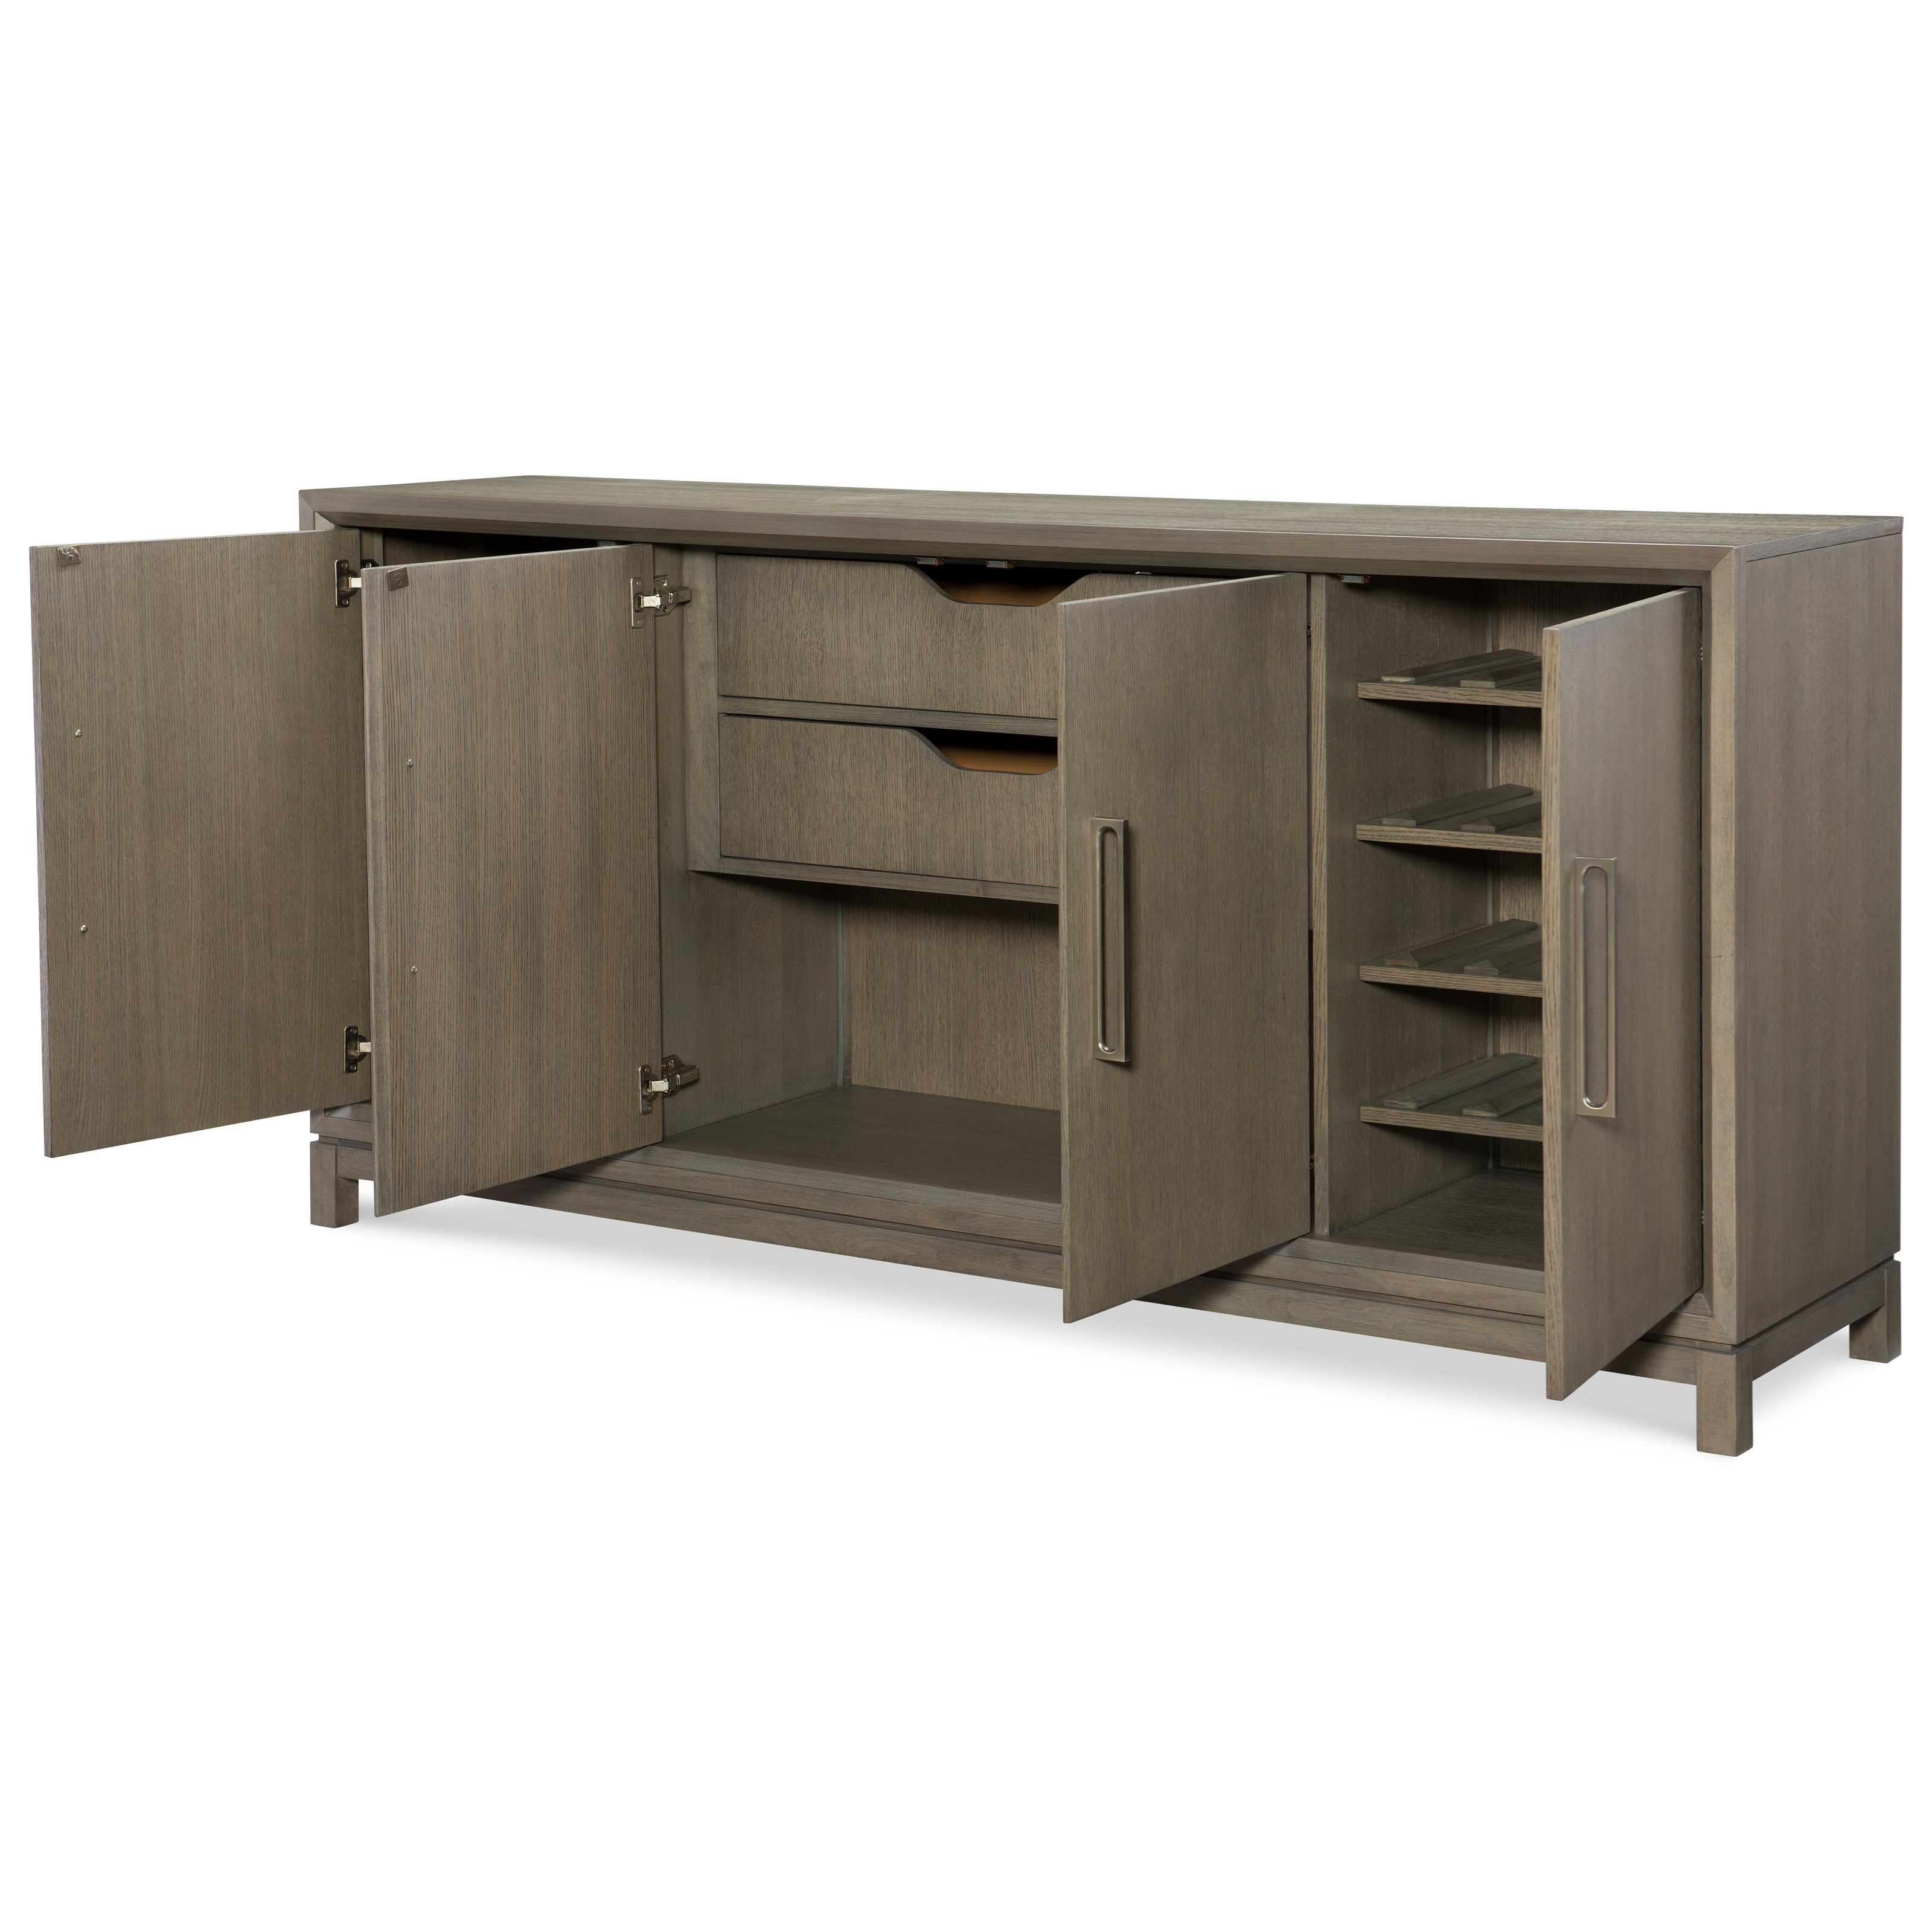 Rachael Ray Home High Line Credenza With Reversible Wine Bottle Shelves Fashion Furniture